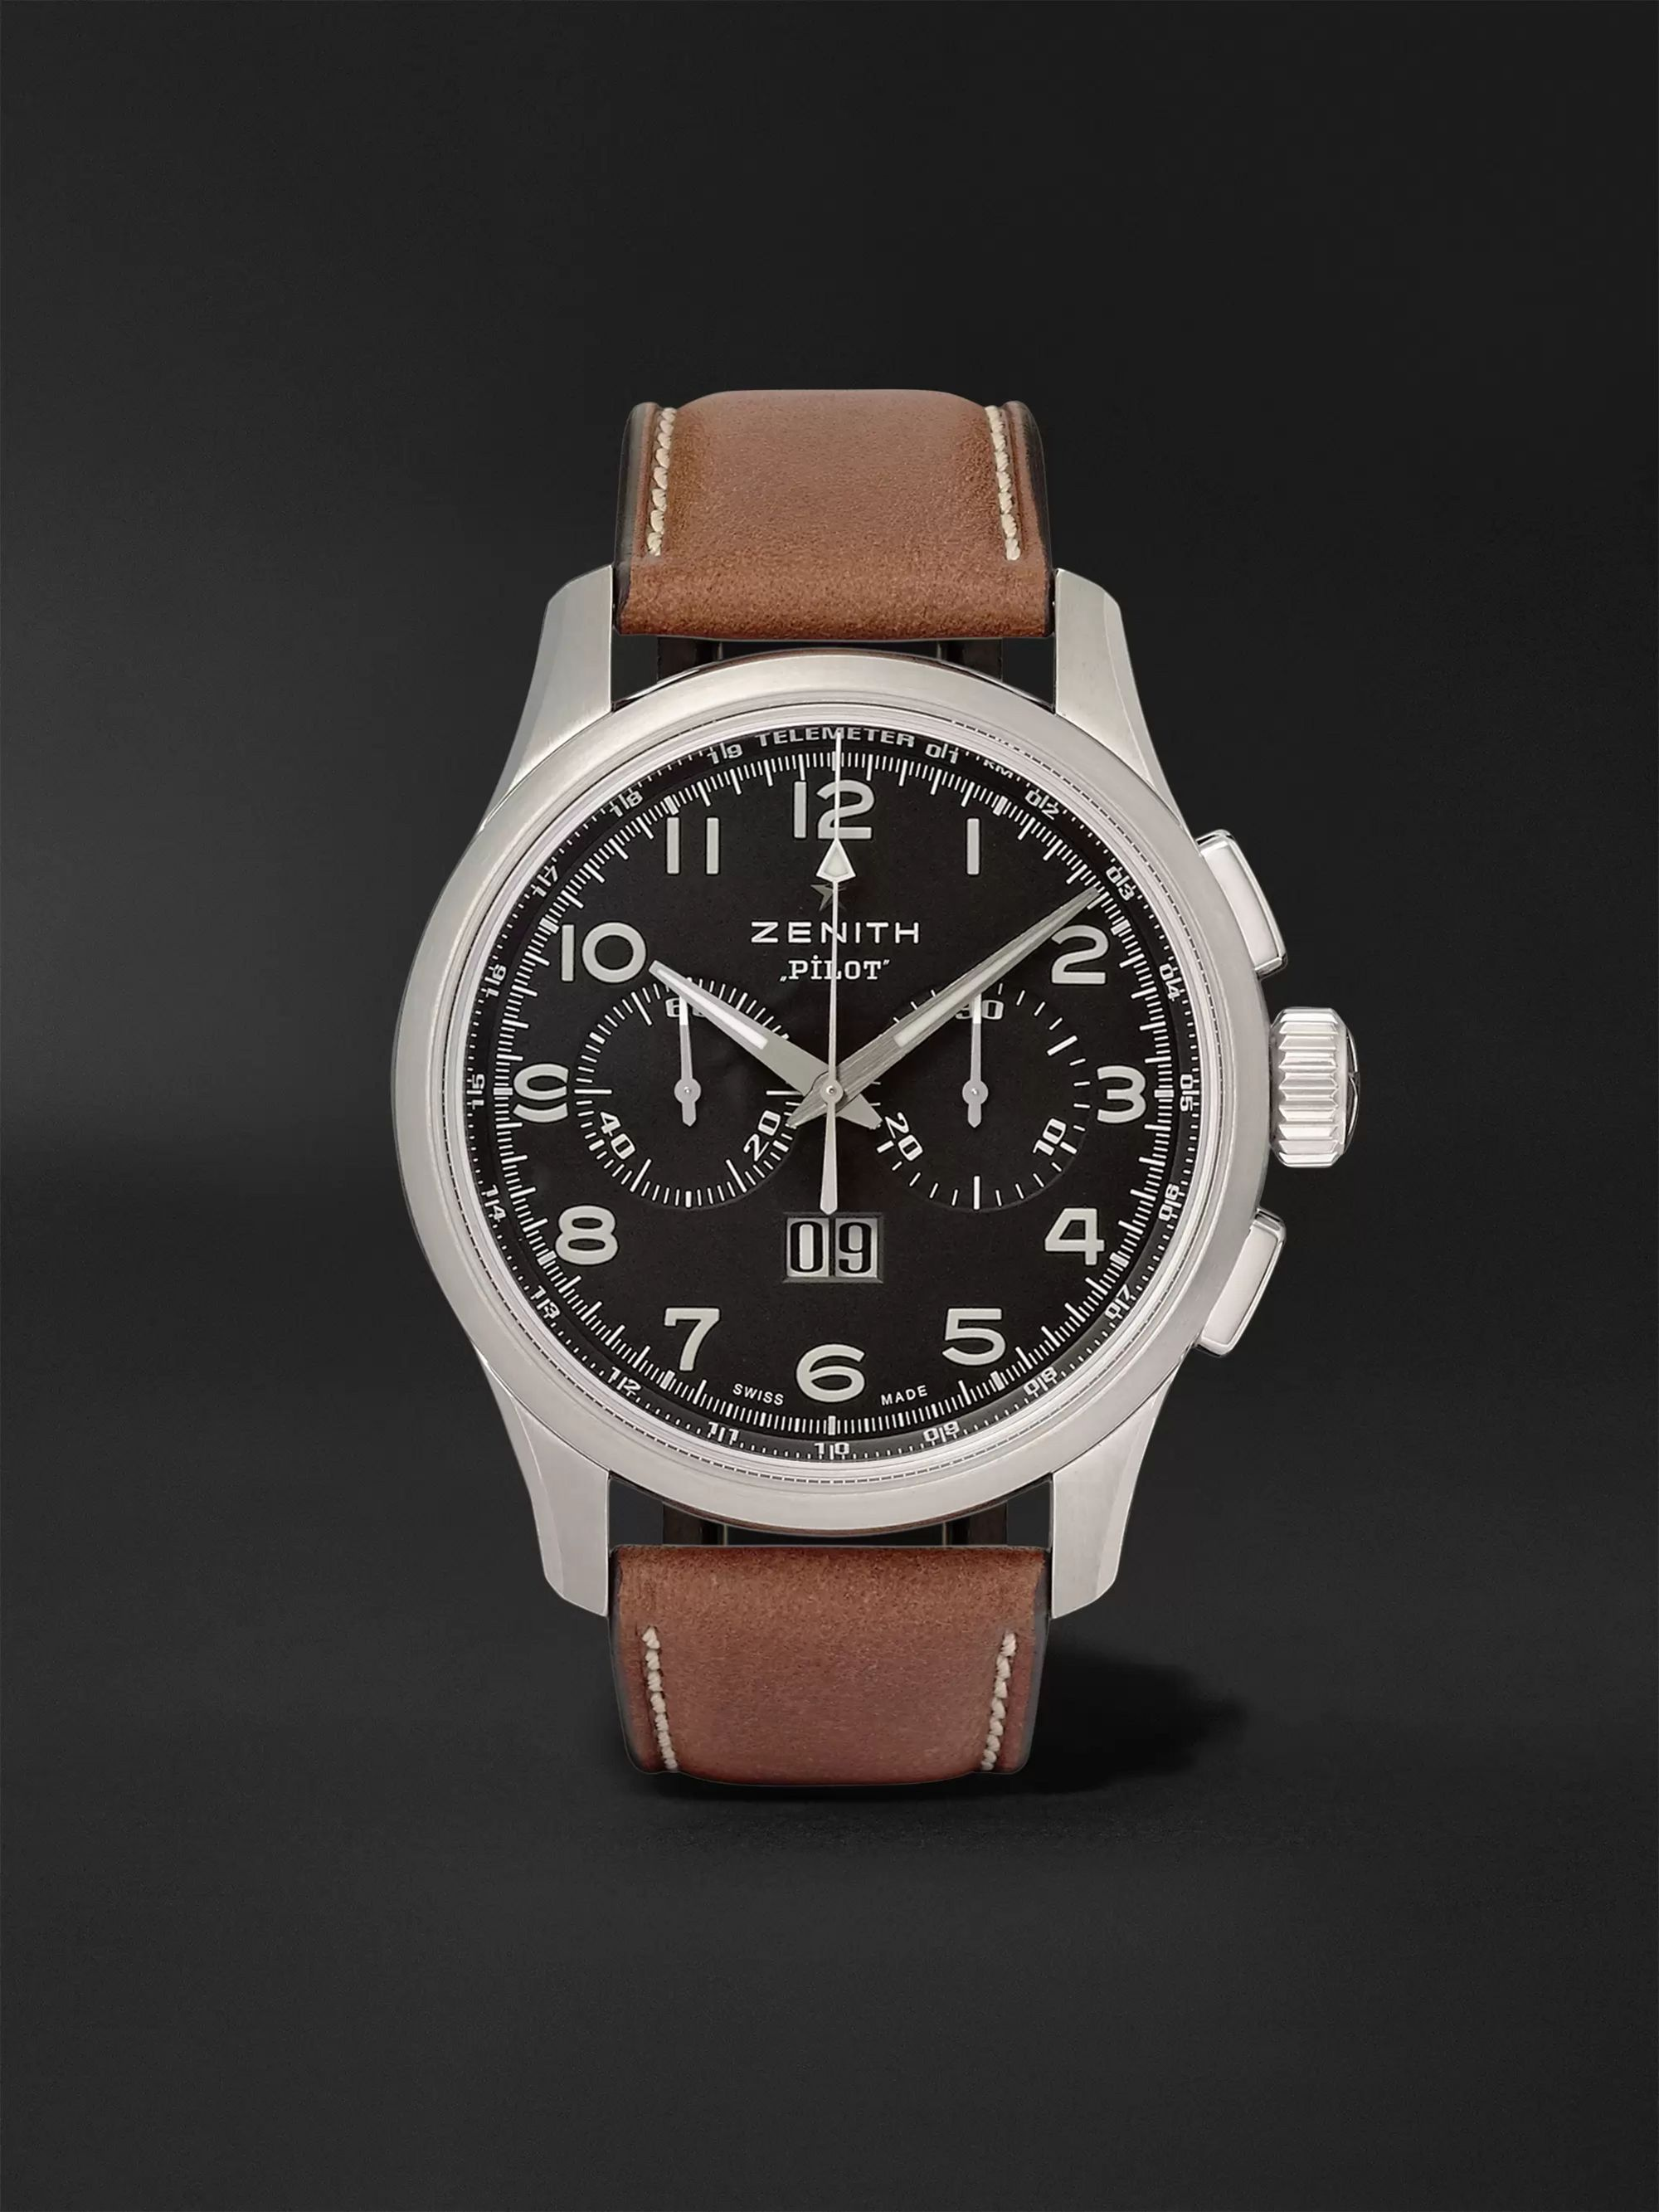 Zenith Pilot 44mm Stainless Steel and Leather Watch, Ref. No. 03.2410.4010/21.C722